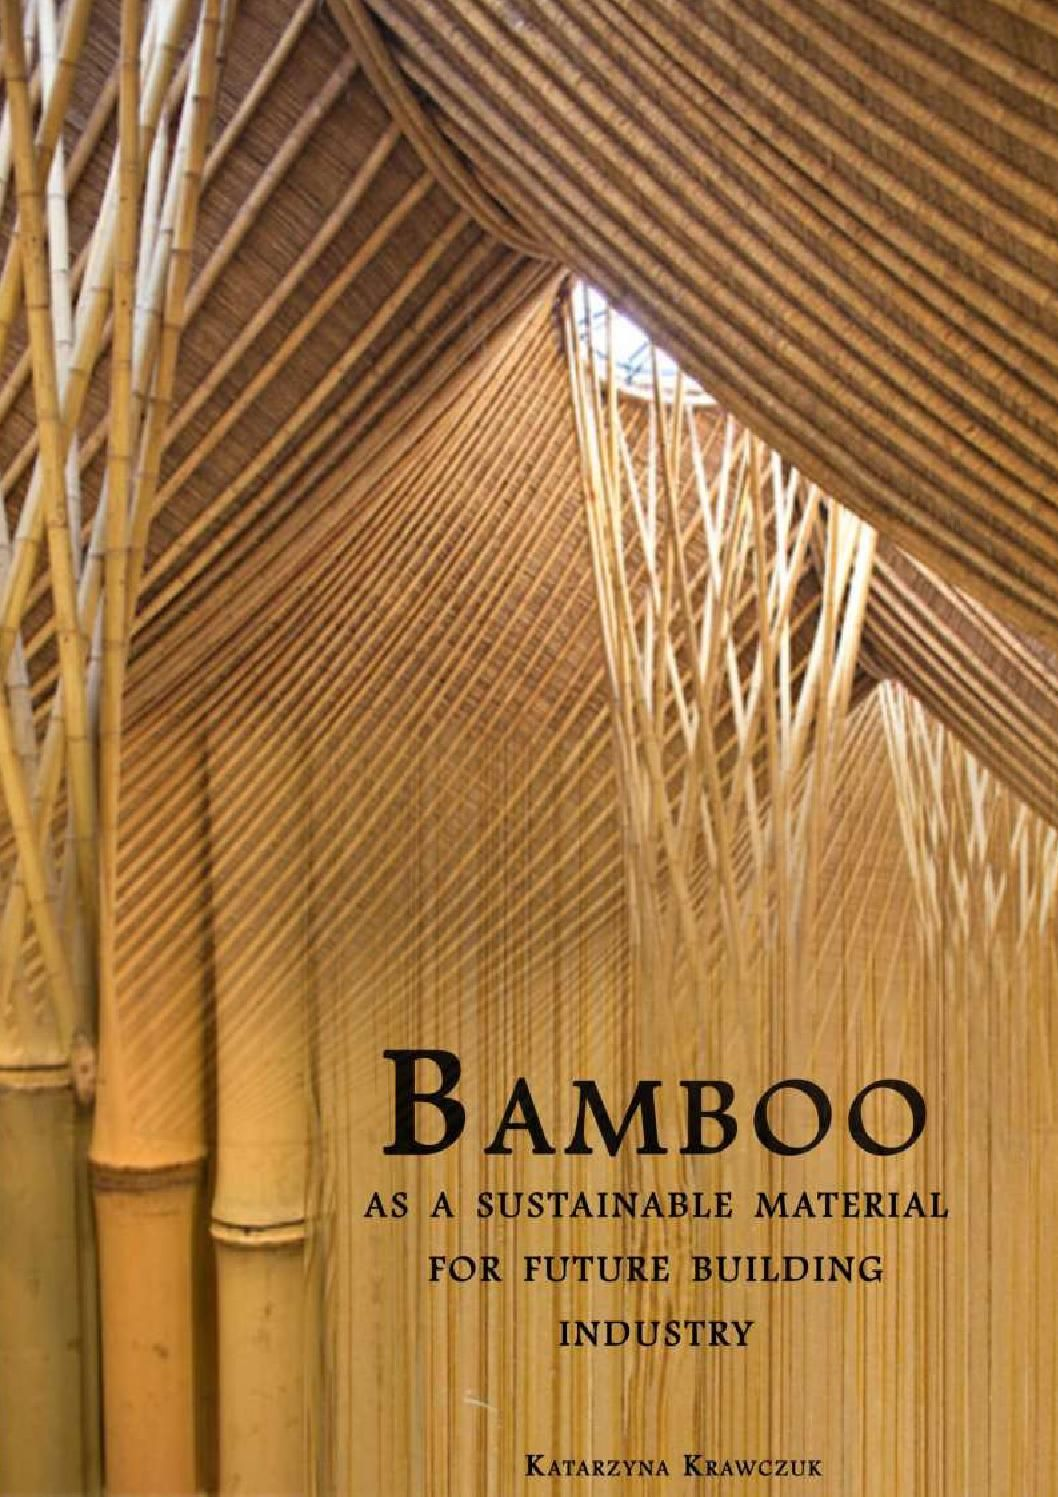 Bamboo As A Sustainable Material For Future Building Industry